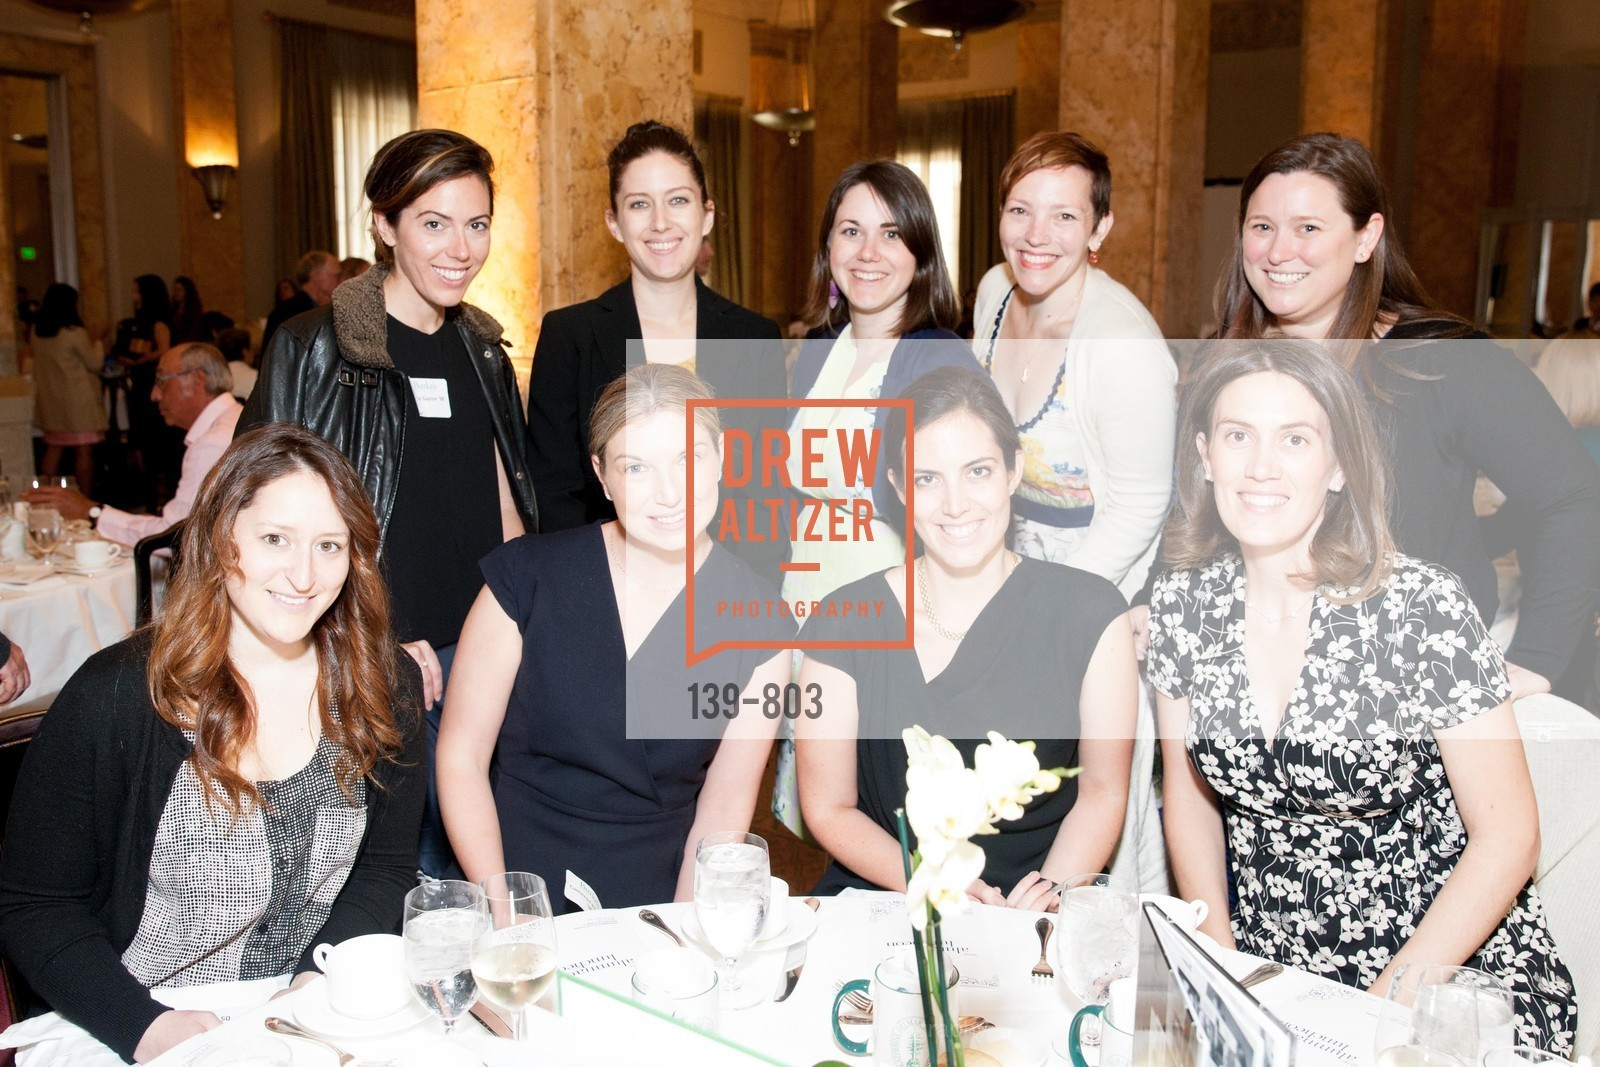 Darby Gaynor, Cameron Phleger, BURKE'S Alumnae Luncheon, US, April 25th, 2015,Drew Altizer, Drew Altizer Photography, full-service event agency, private events, San Francisco photographer, photographer California